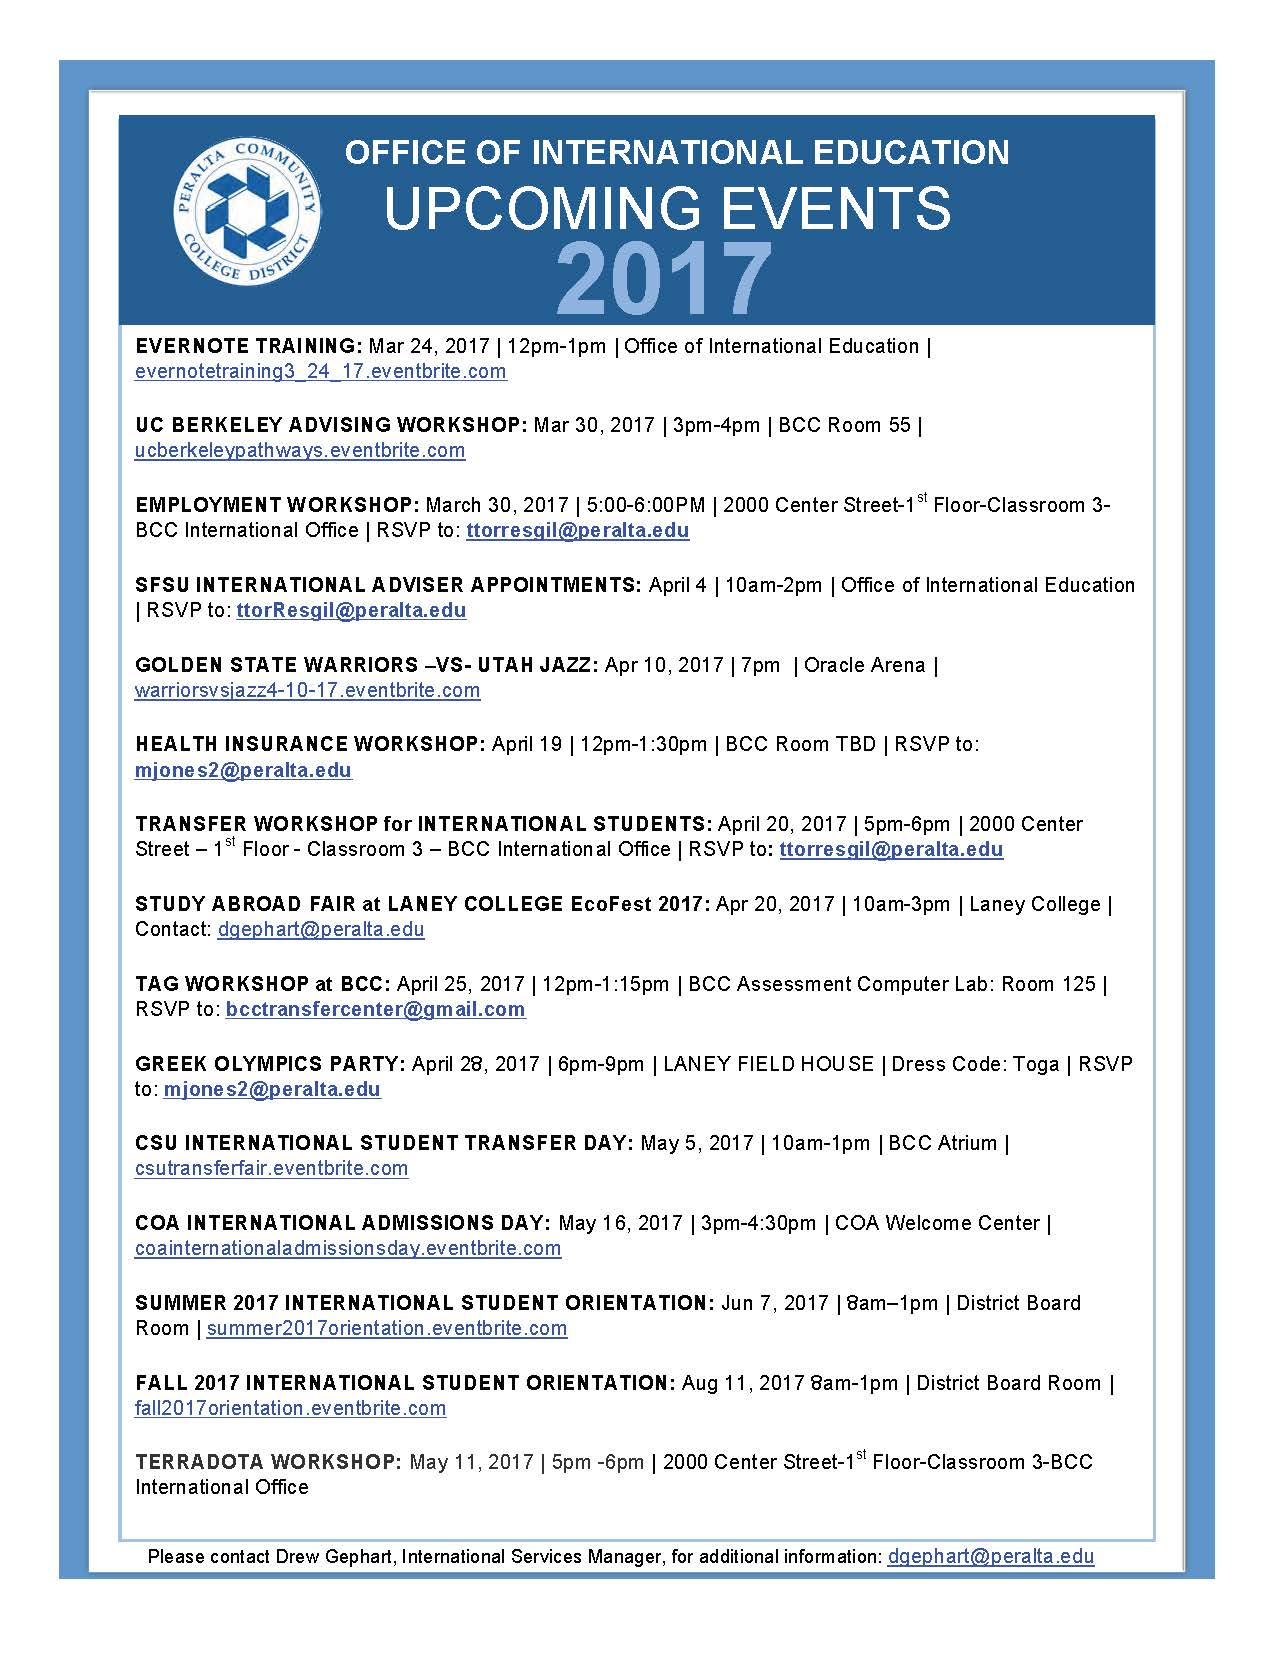 OIE Upcoming Events_R